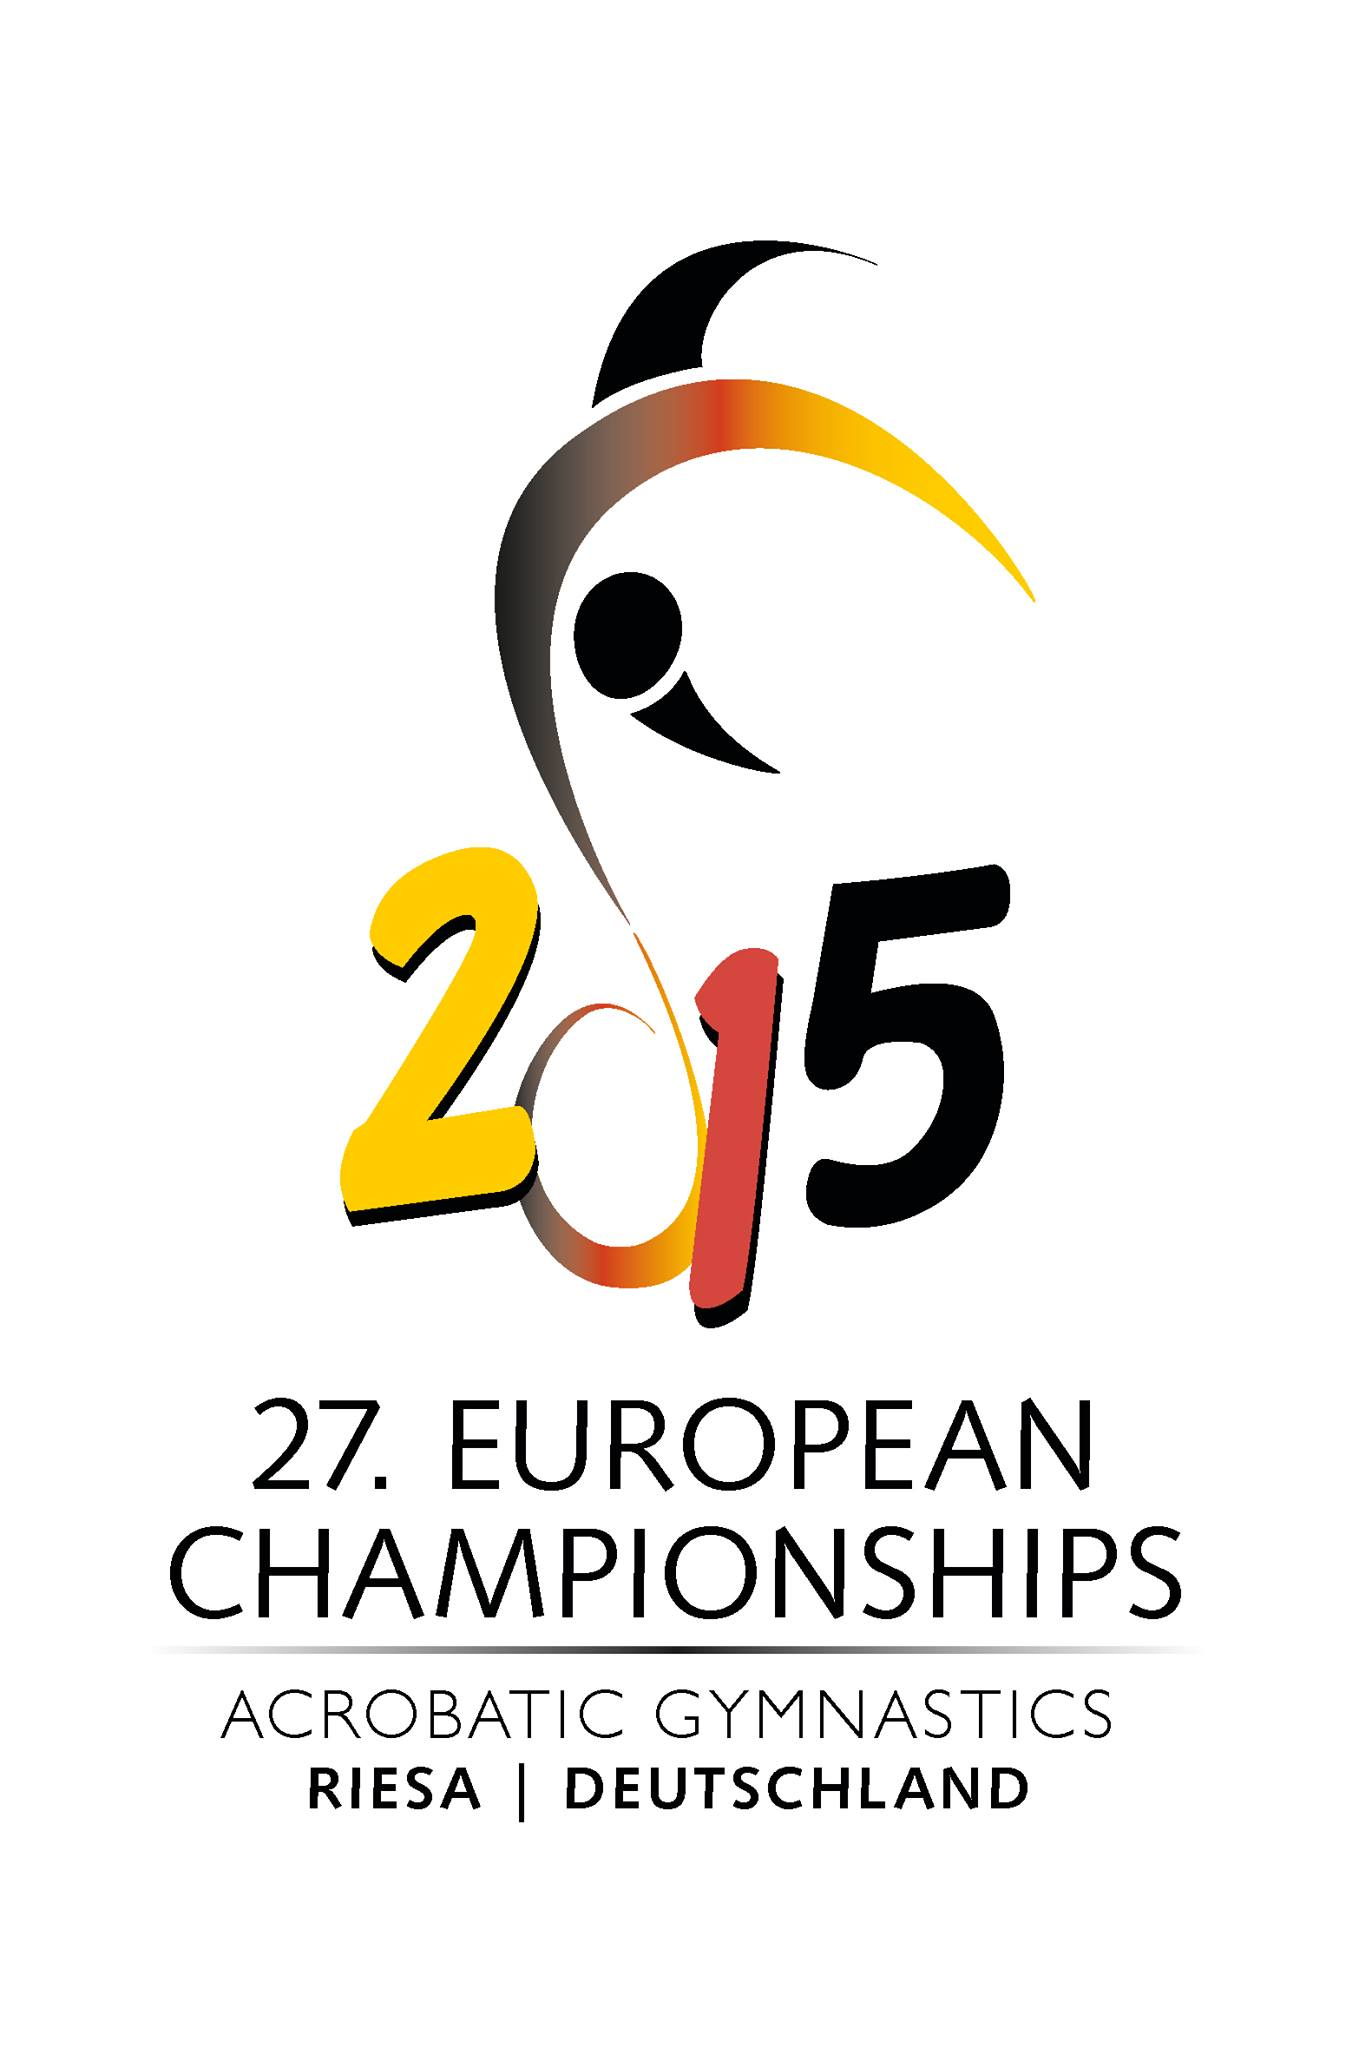 Europameisterschaft 2015 in Riesa